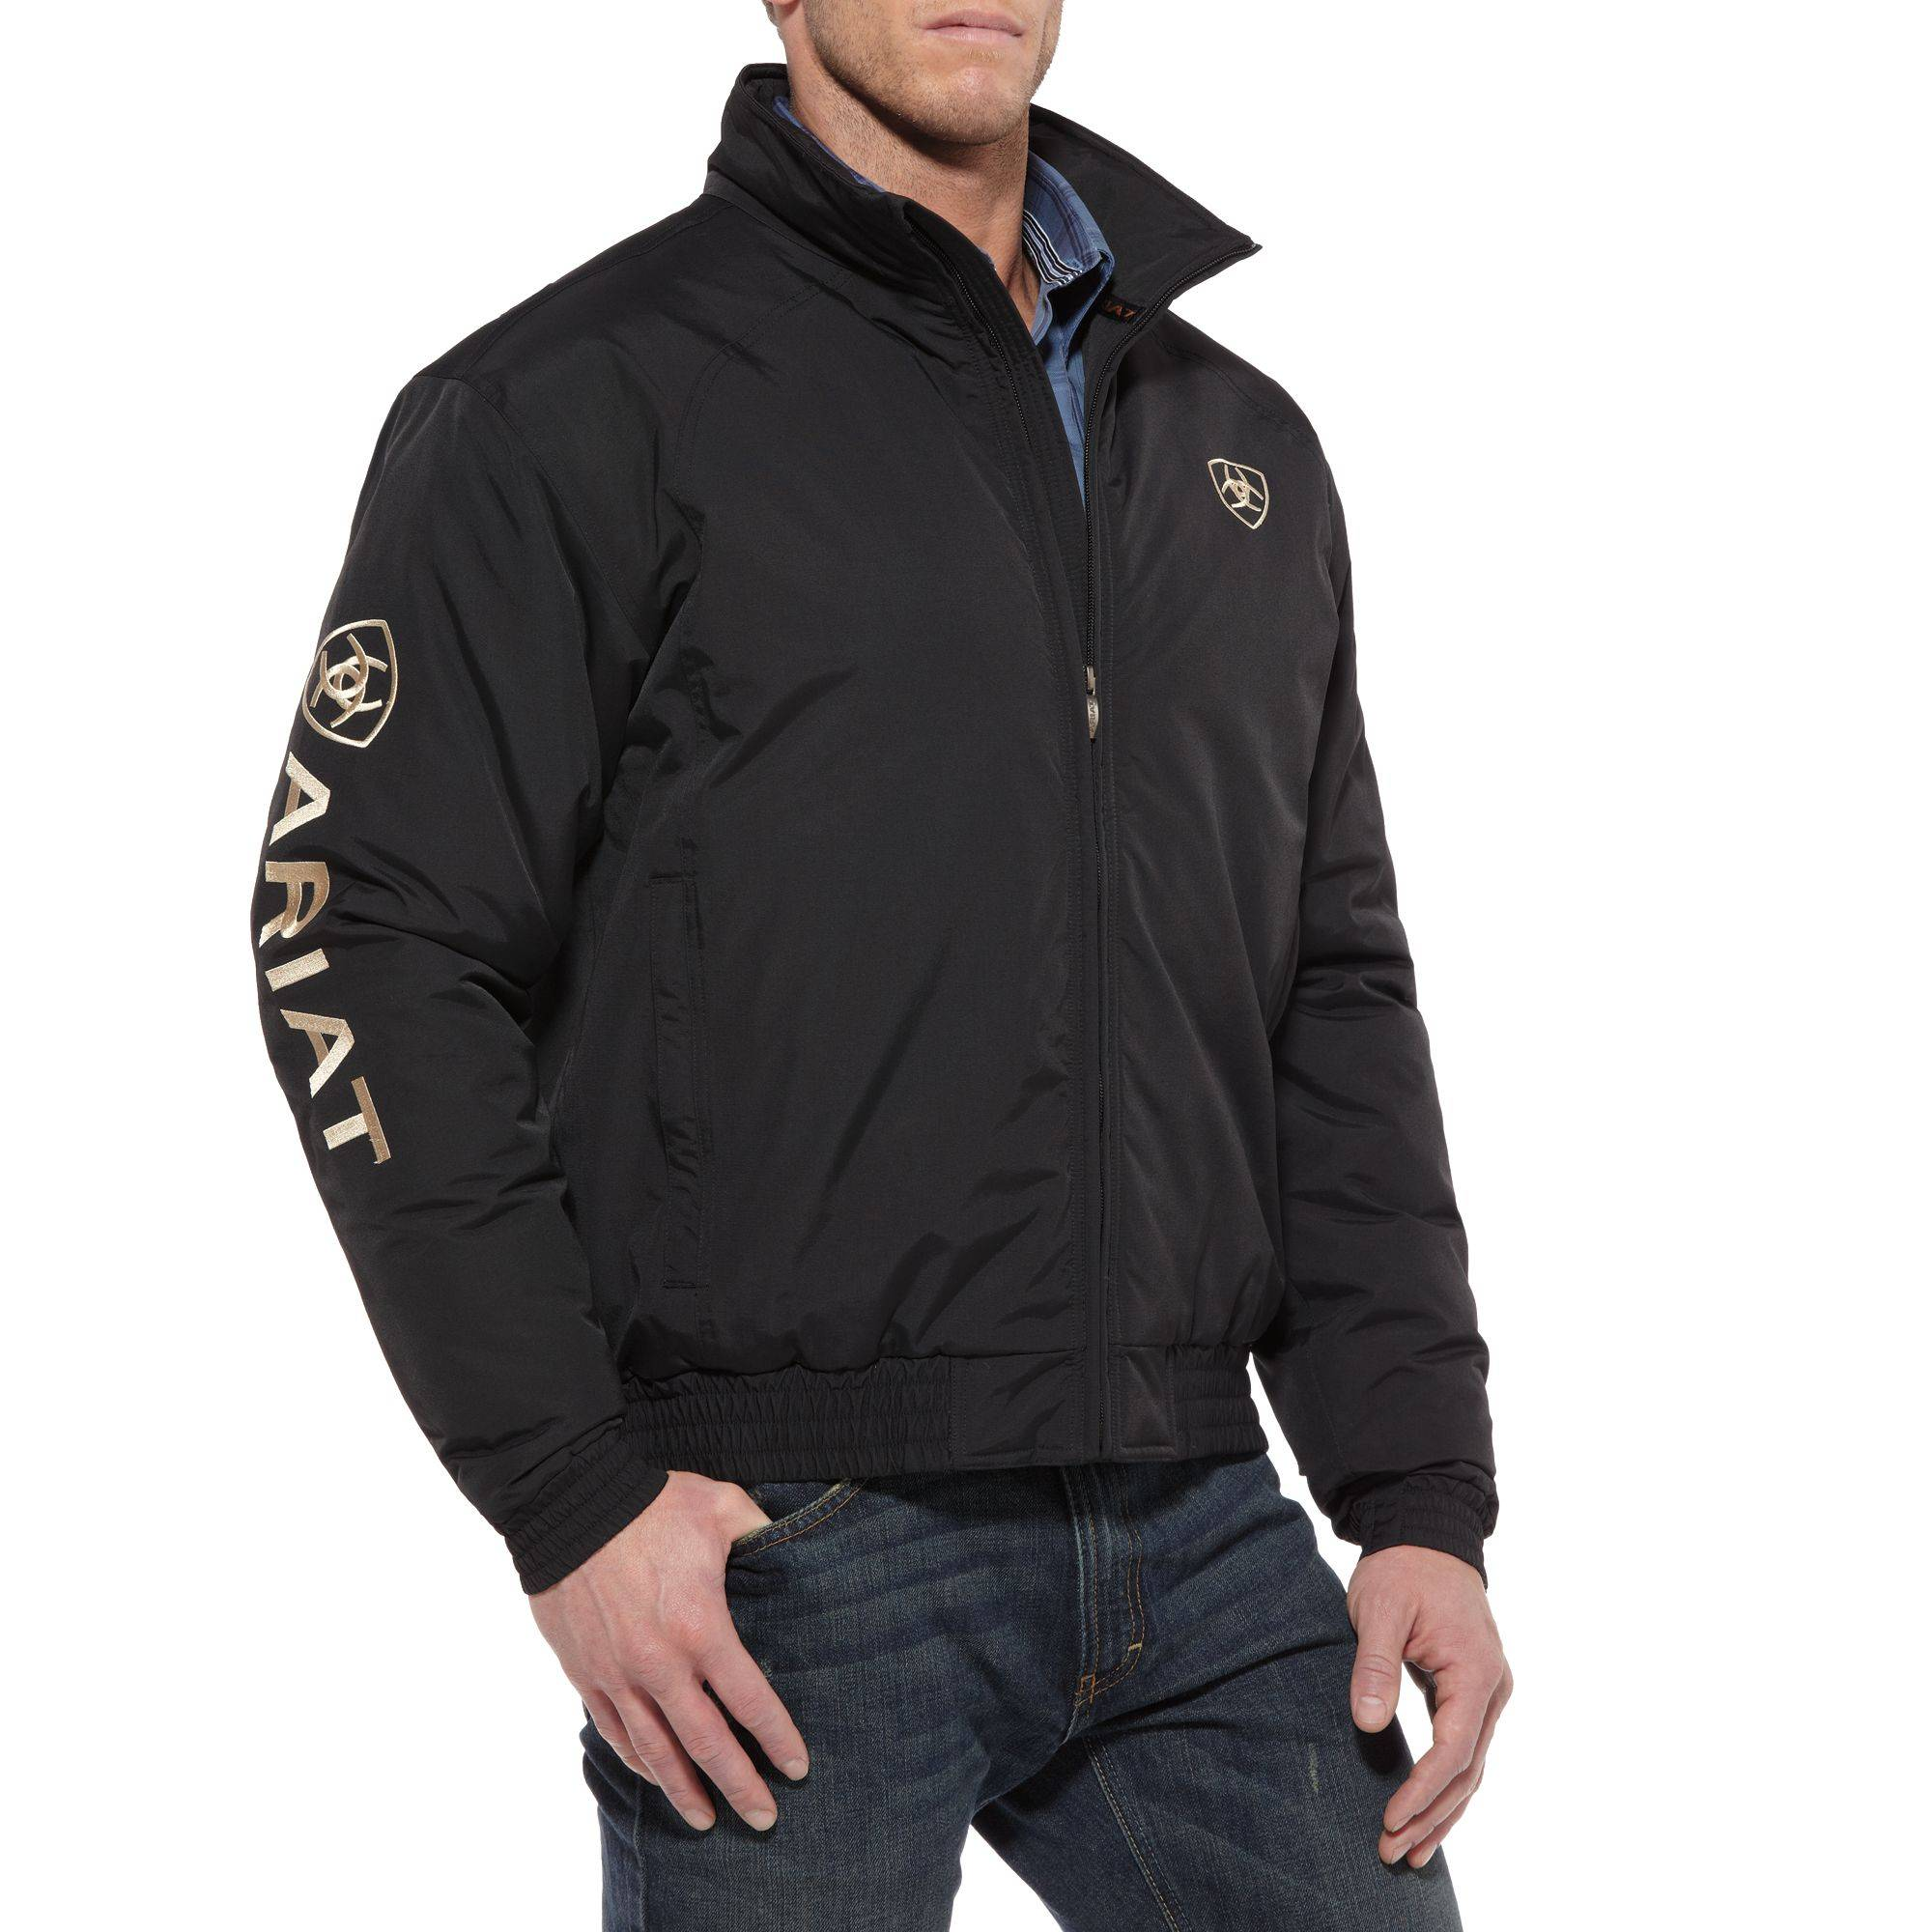 Ariat Team Jacket - Men's, Black